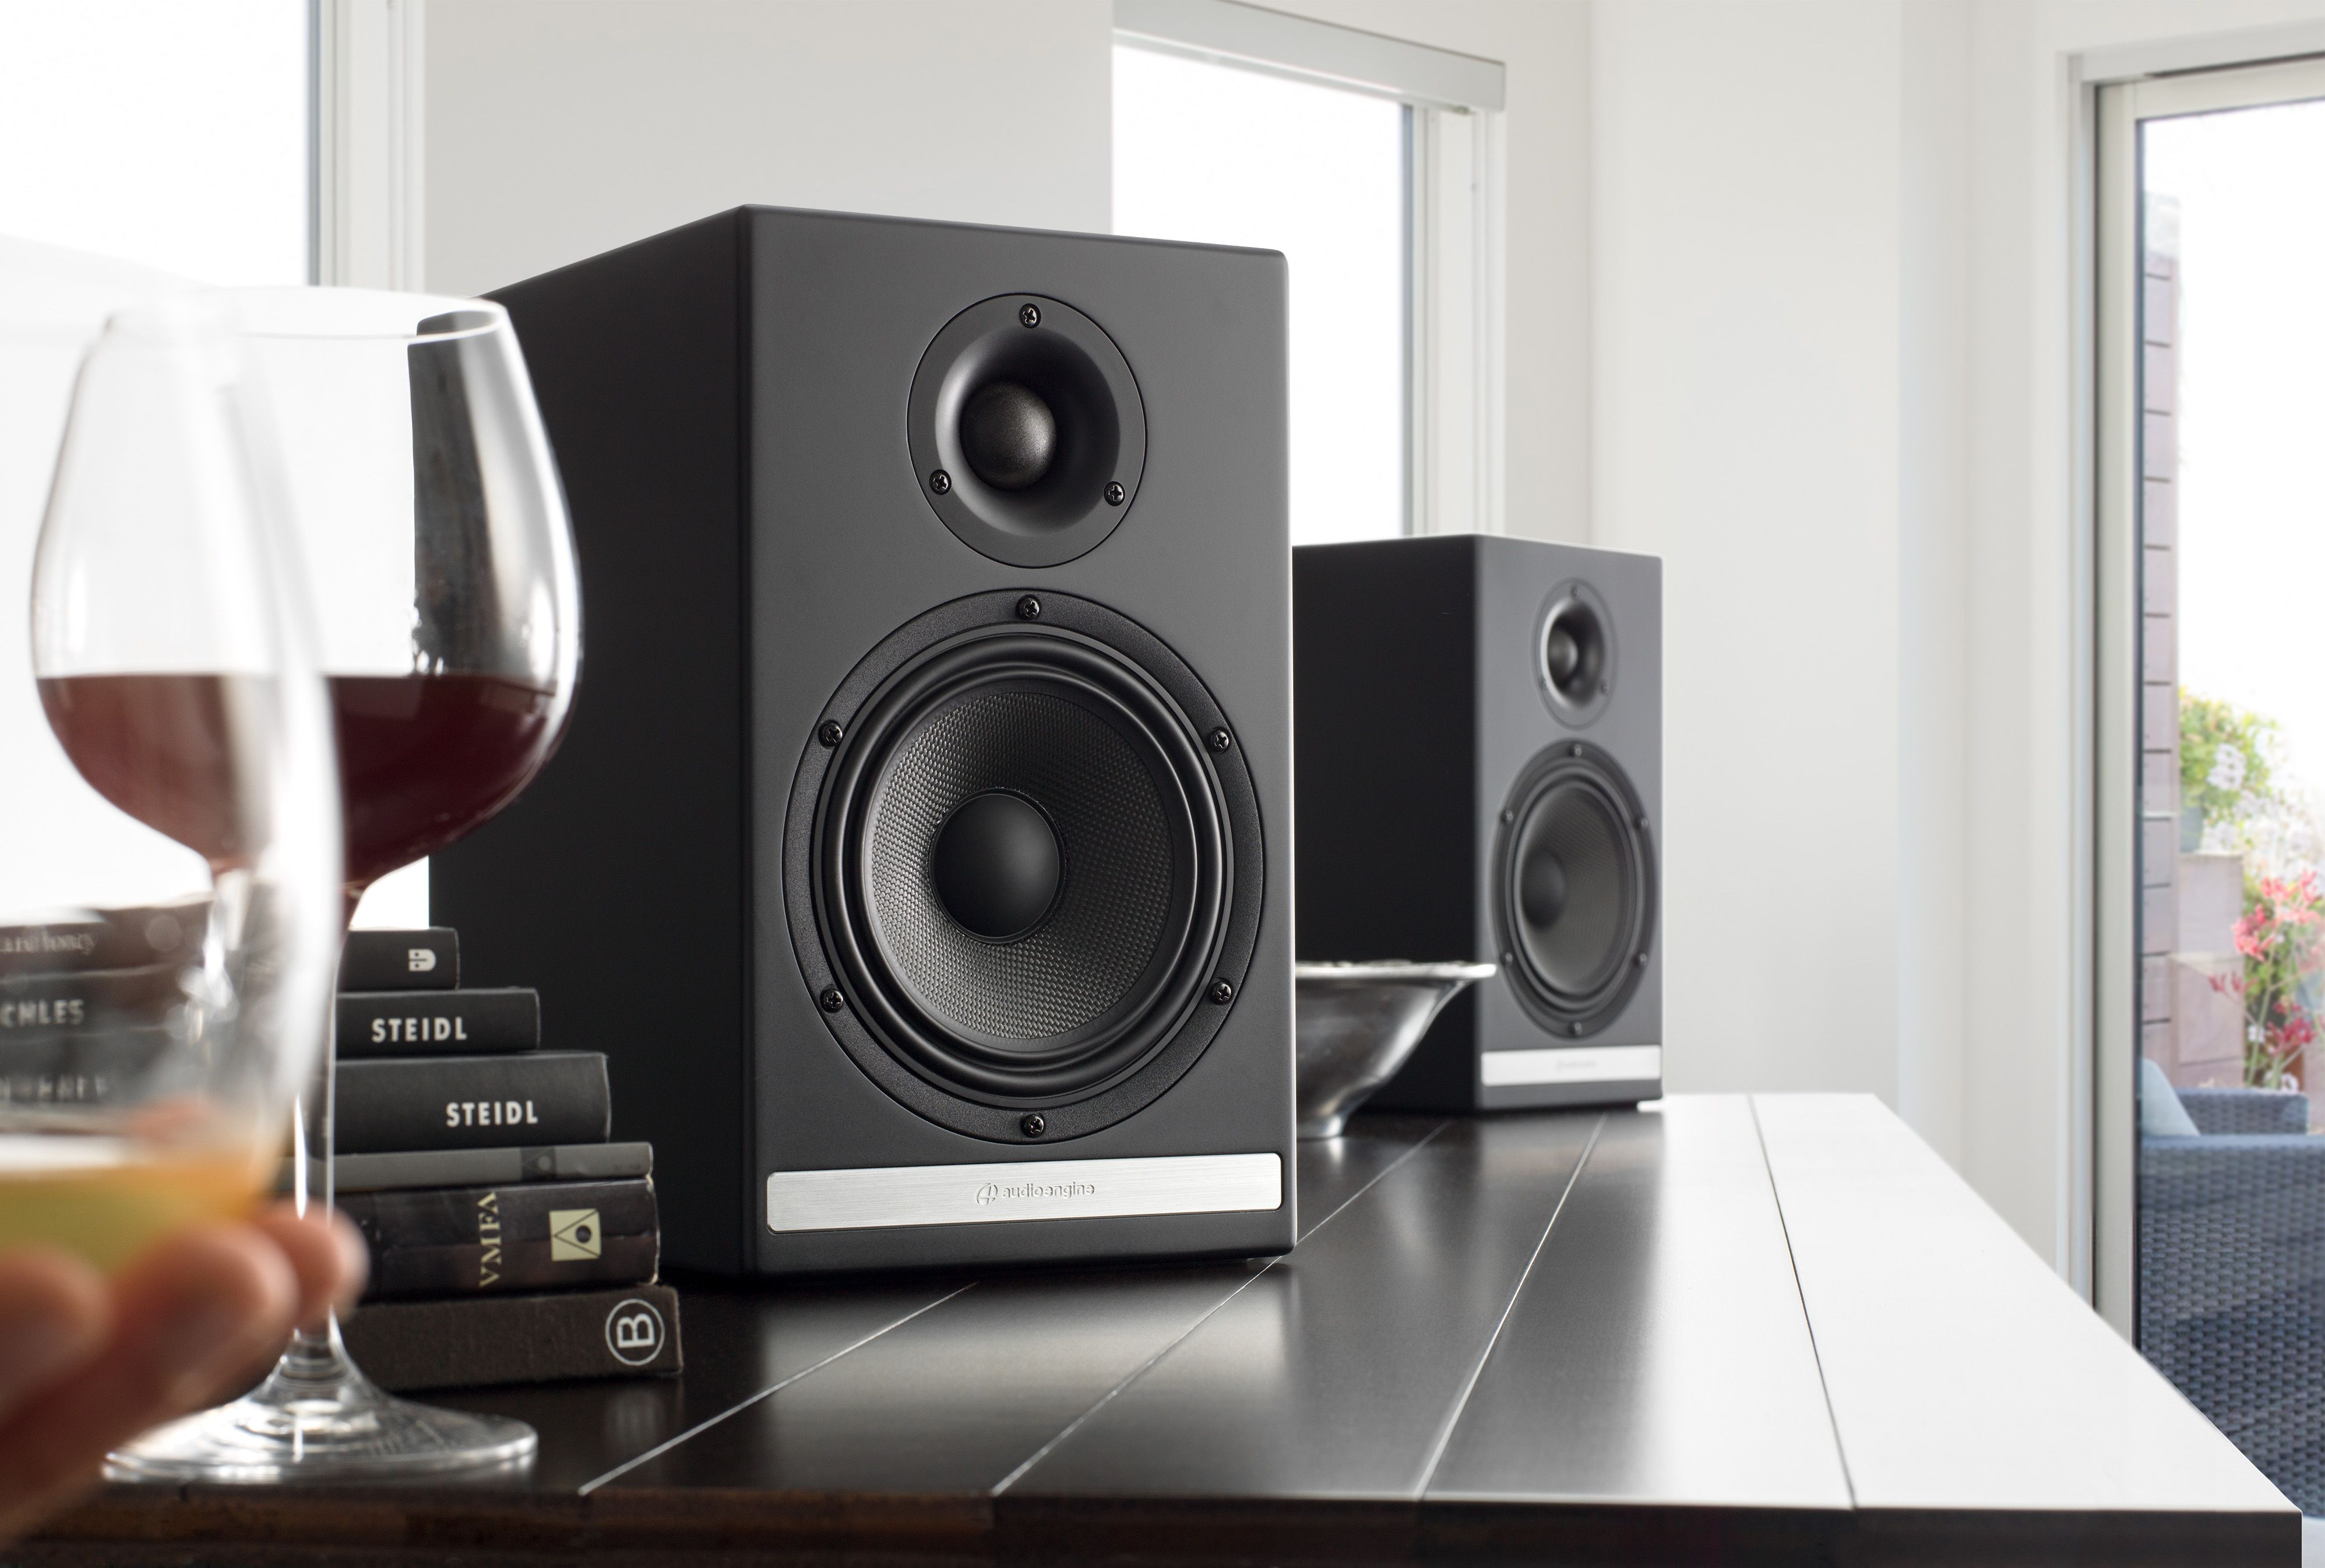 How Does The Cost Of Audioengine Speakers Compare To Other Wireless Systems Design Bluetooth